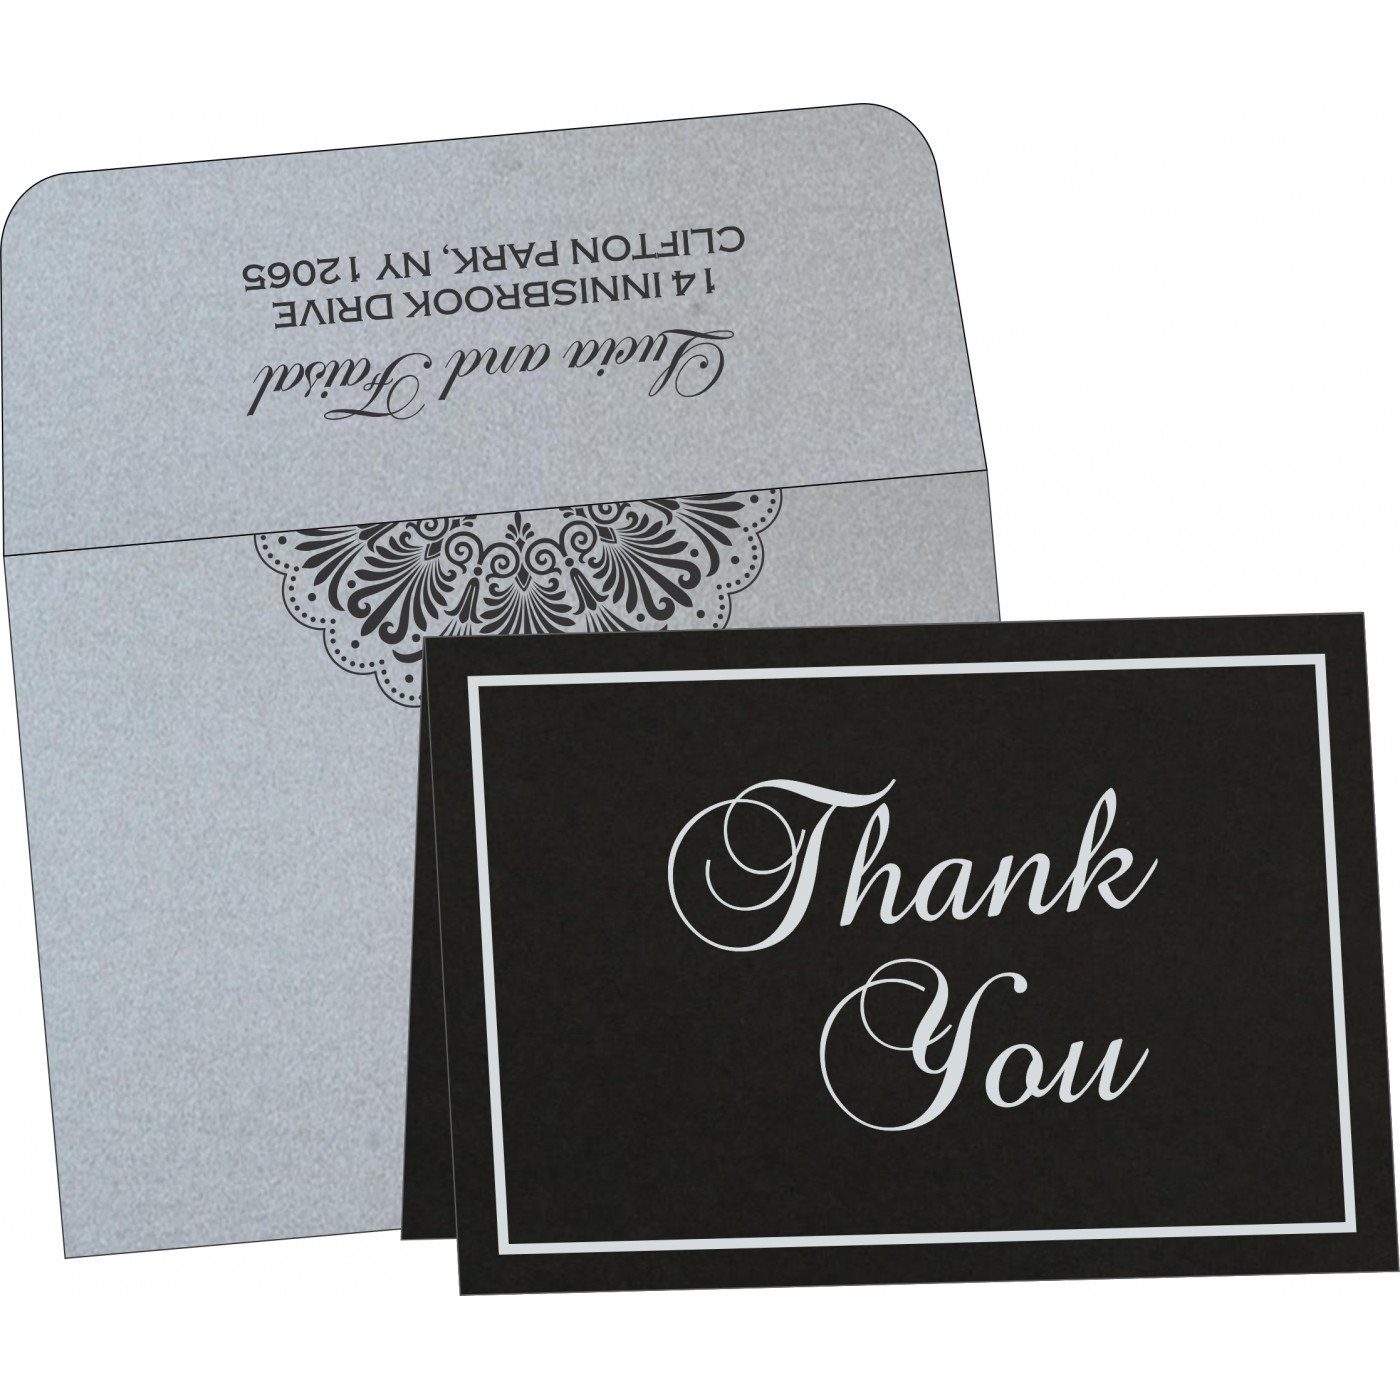 Thank You Cards - TYC-8238A